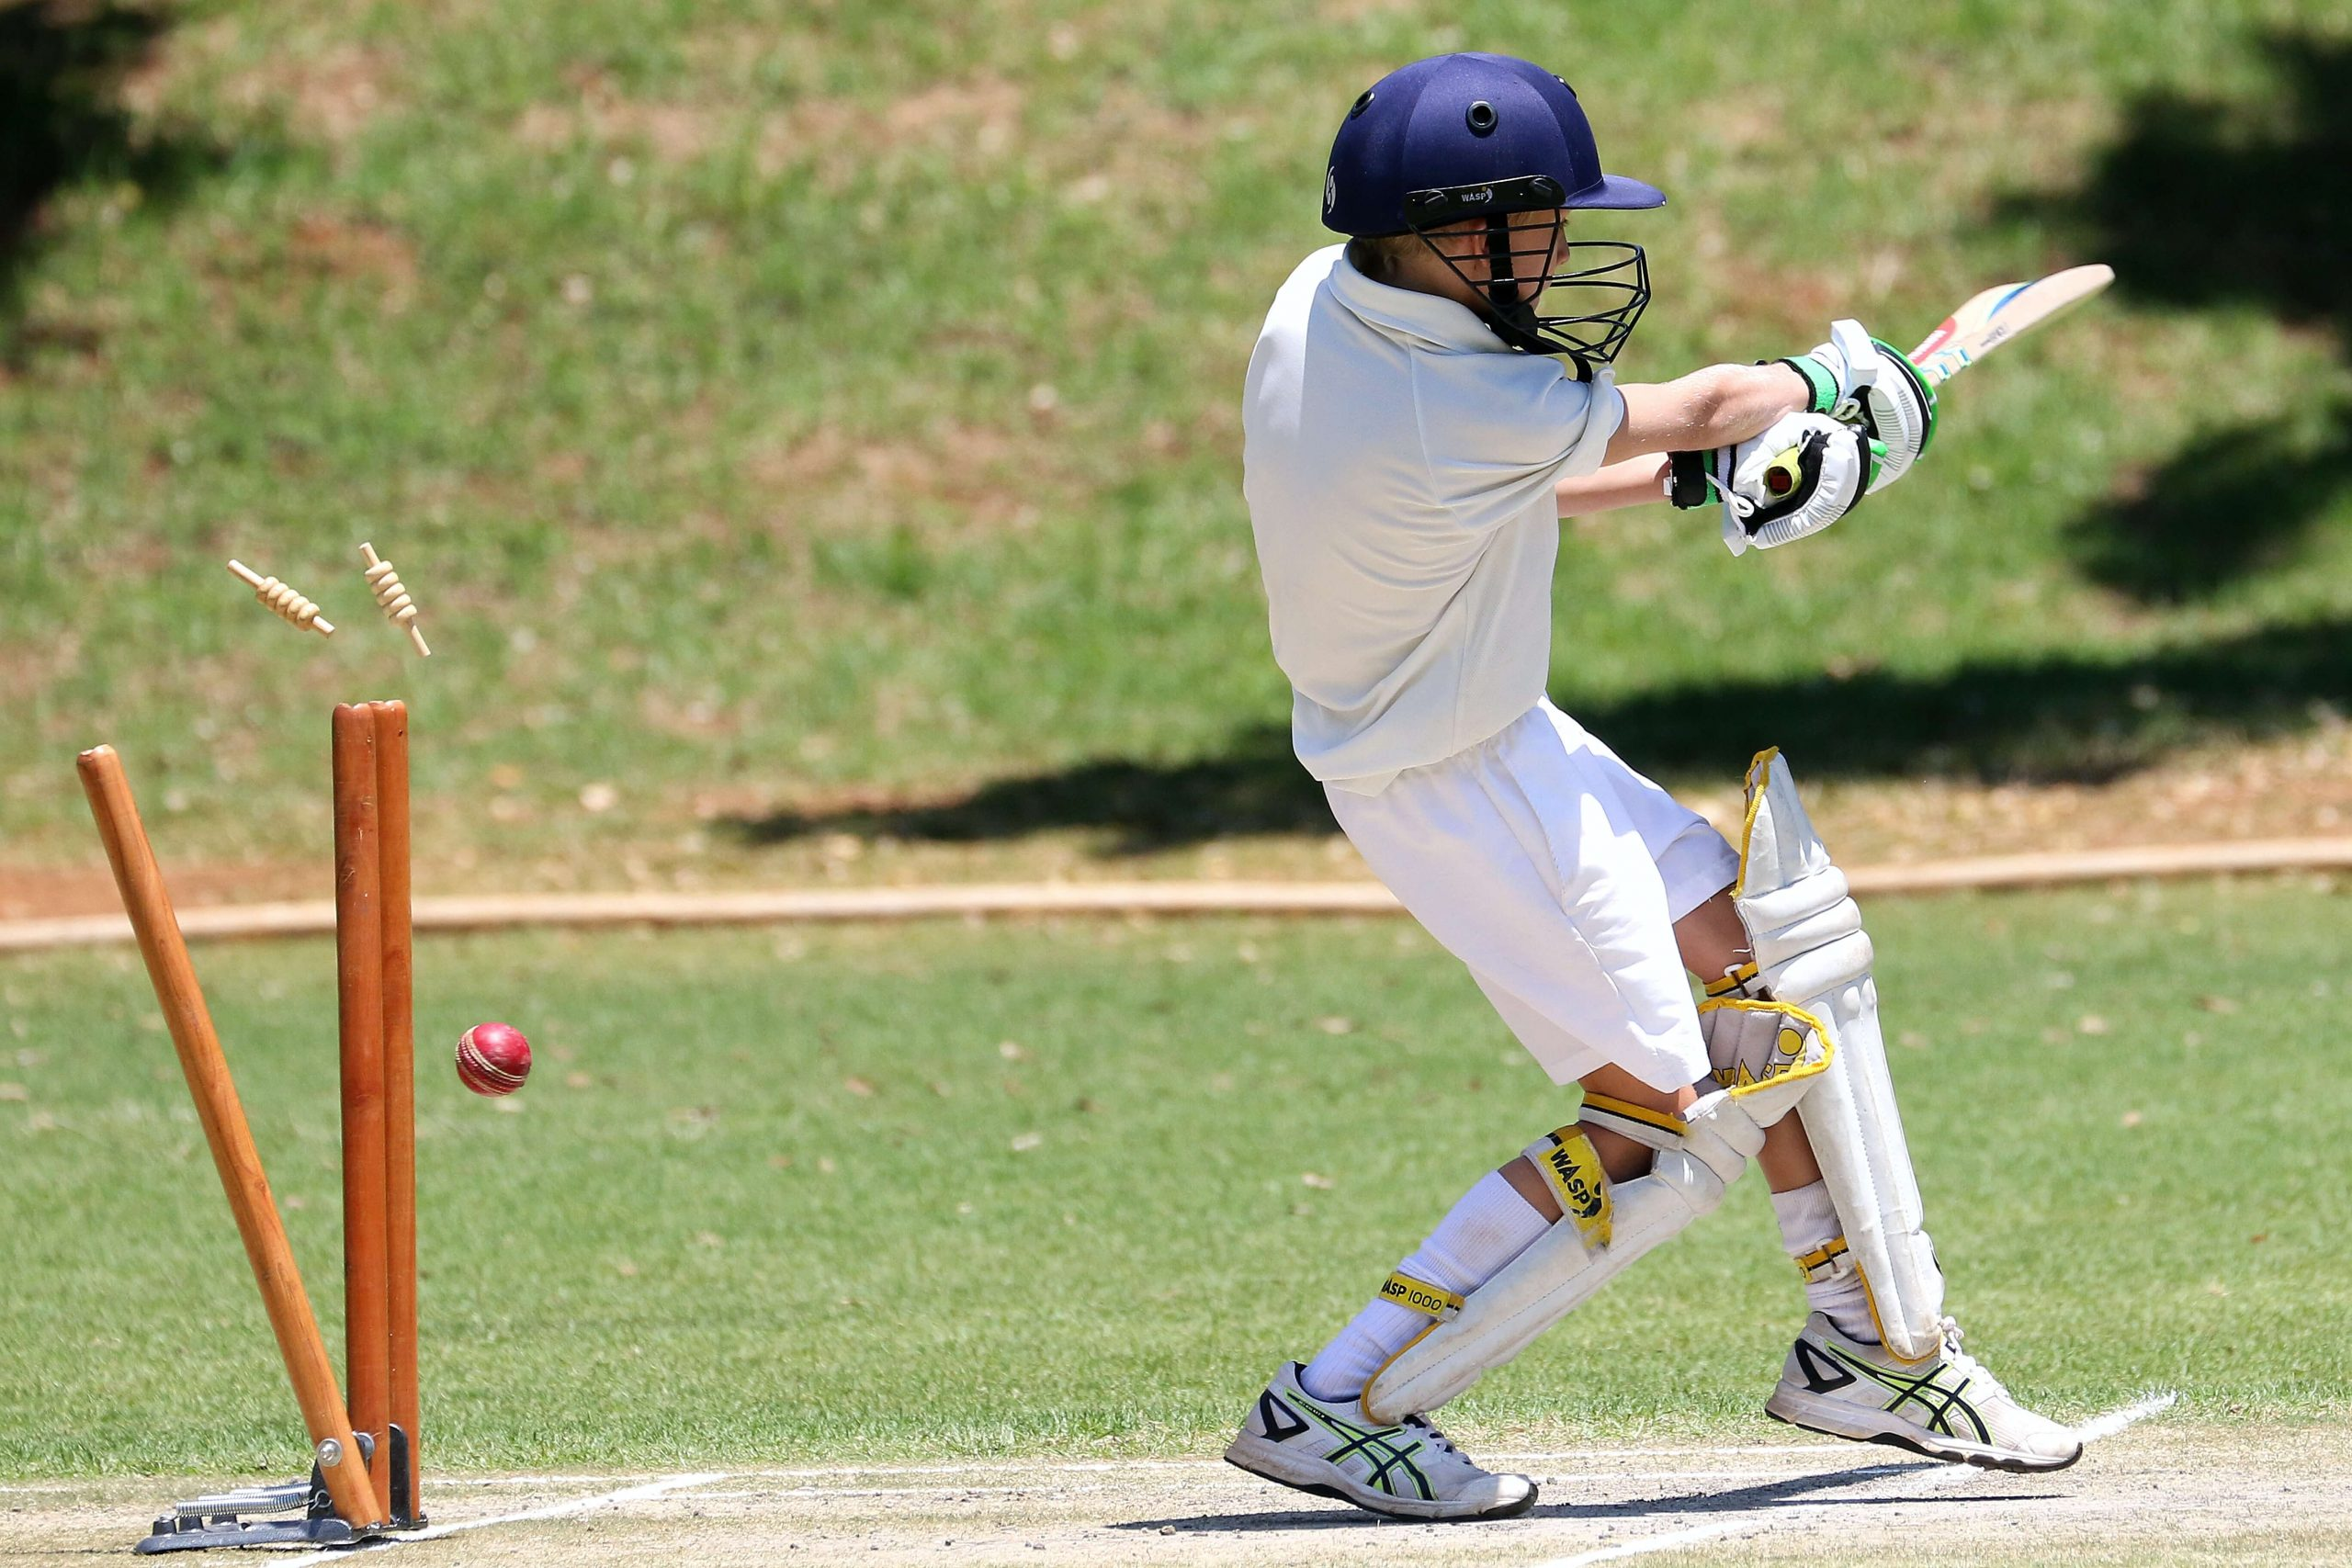 cricket match fixing bookies featured image news